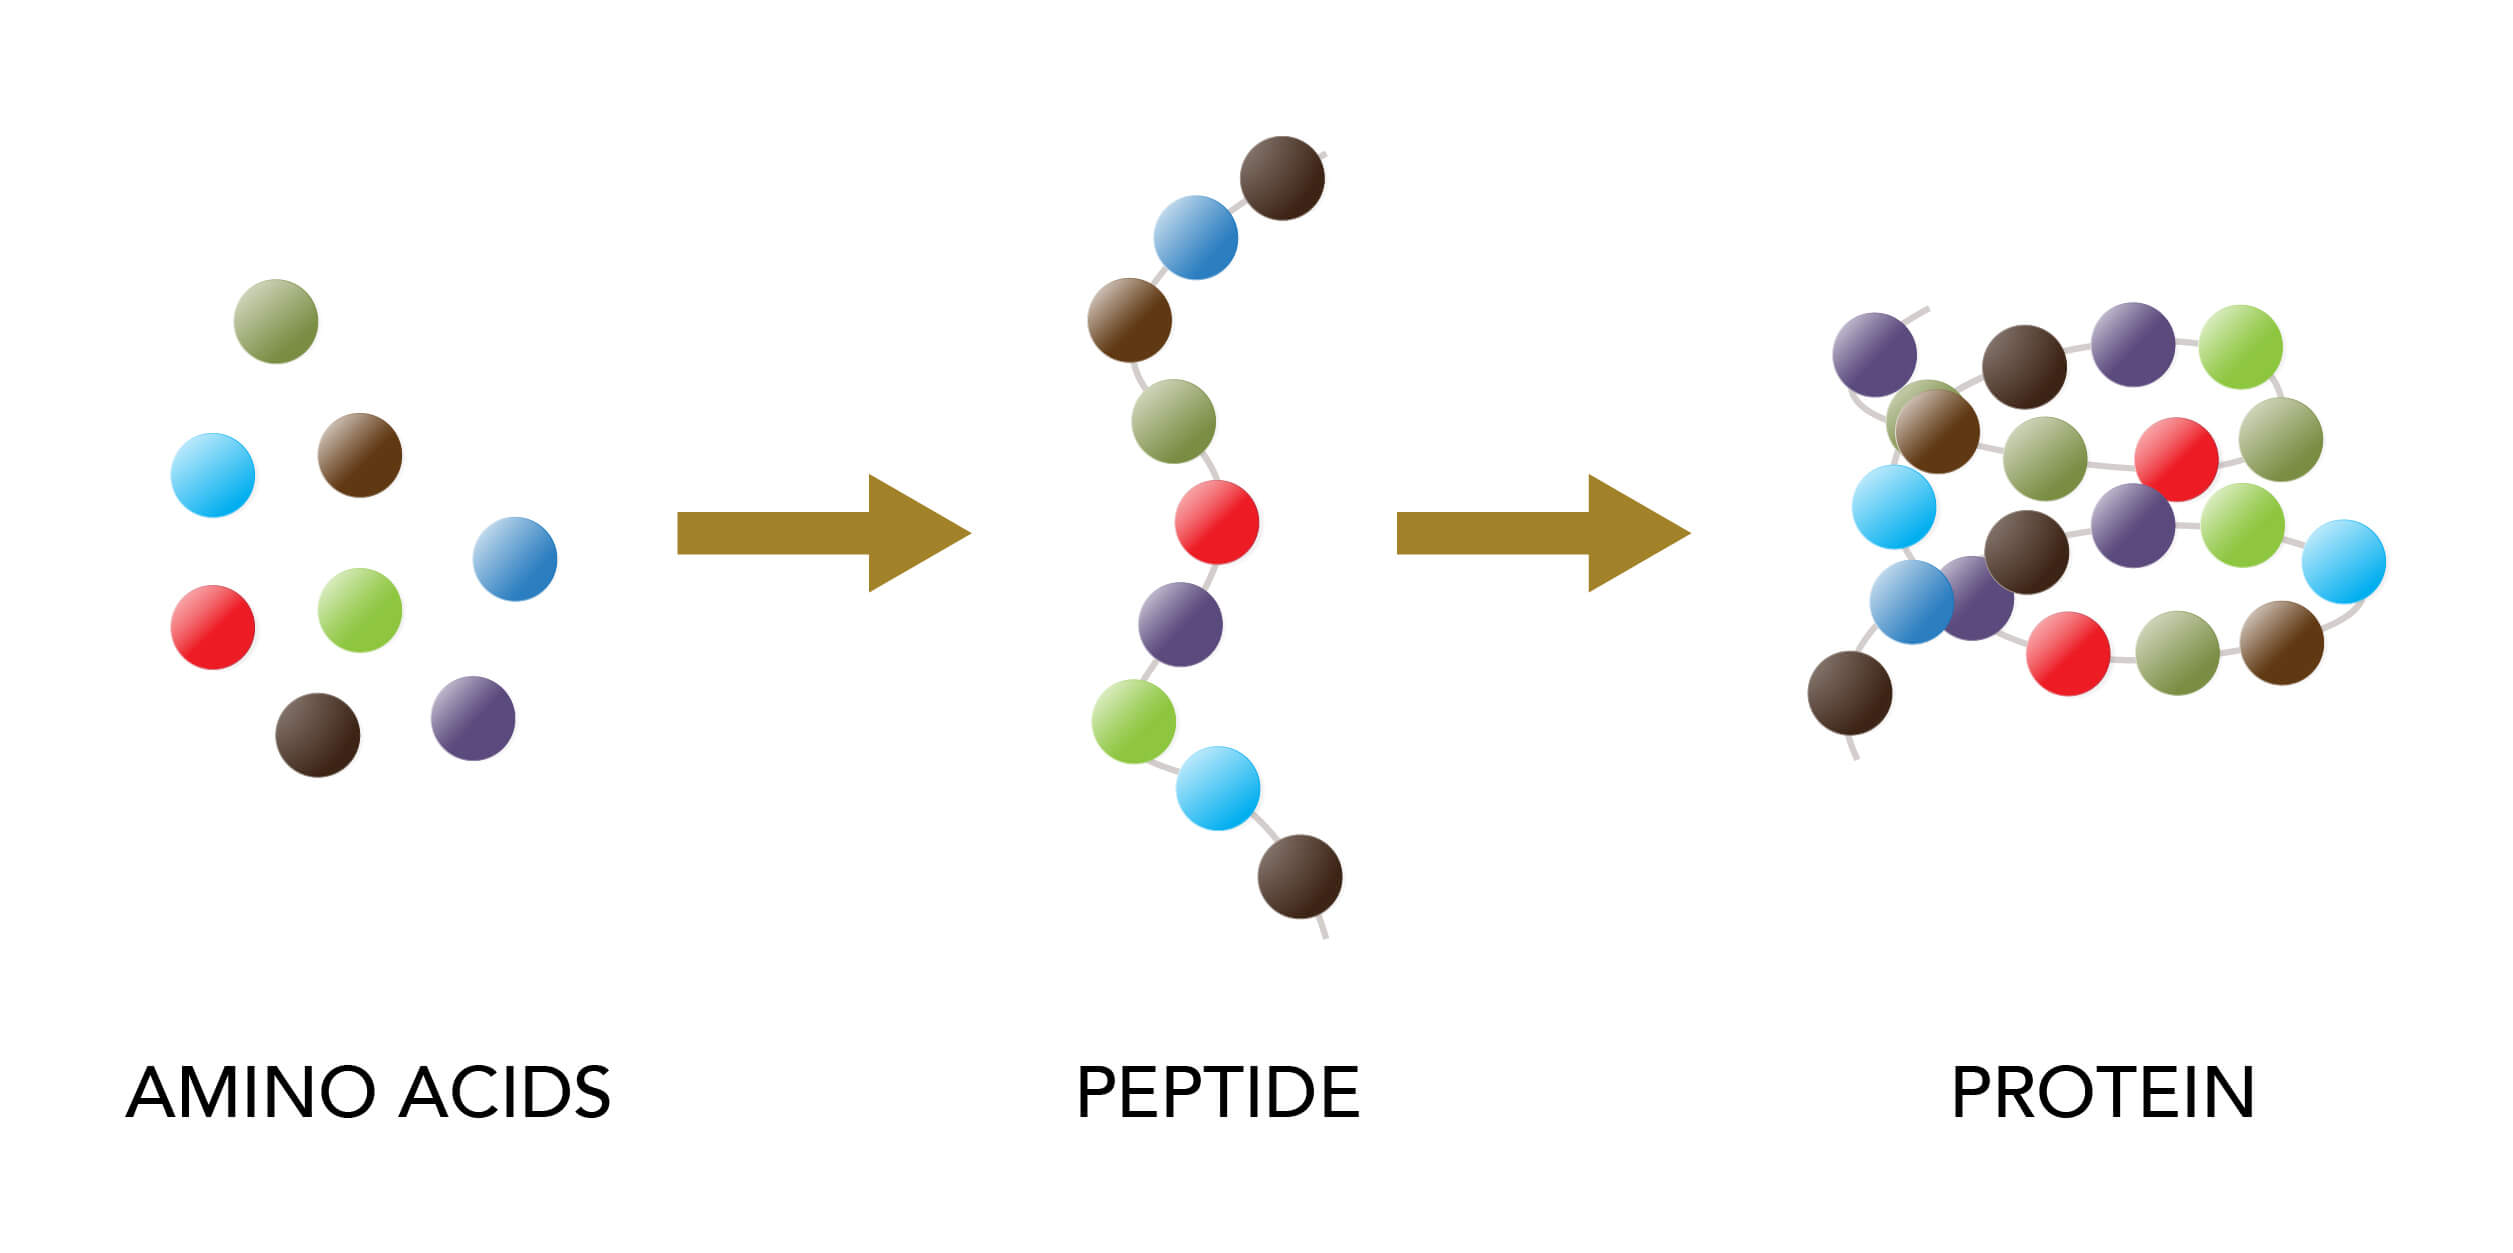 Infographic on peptides